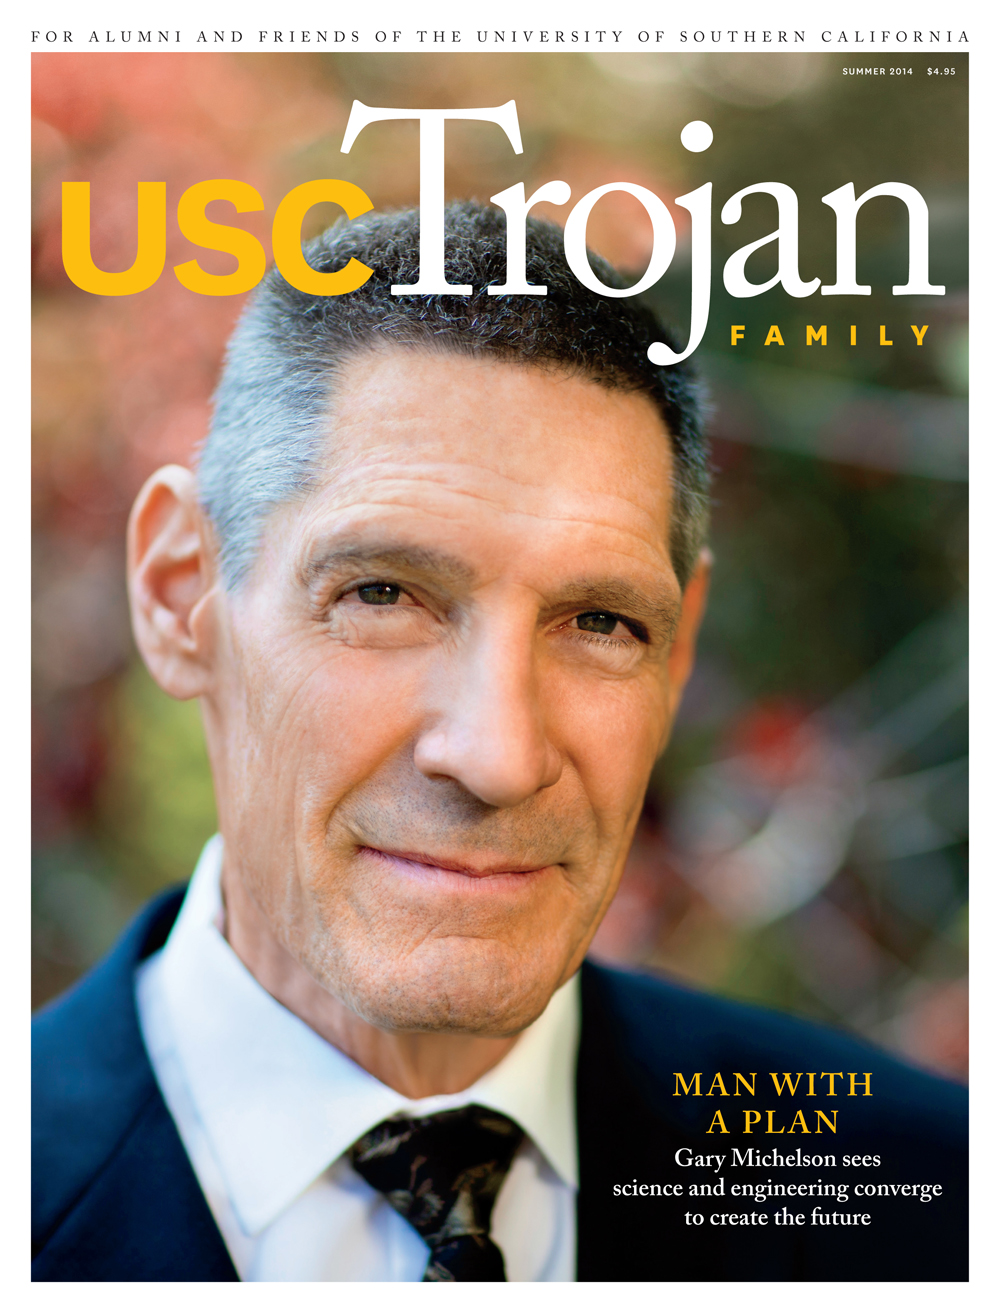 Summer 2014 Trojan Family Magazine cover